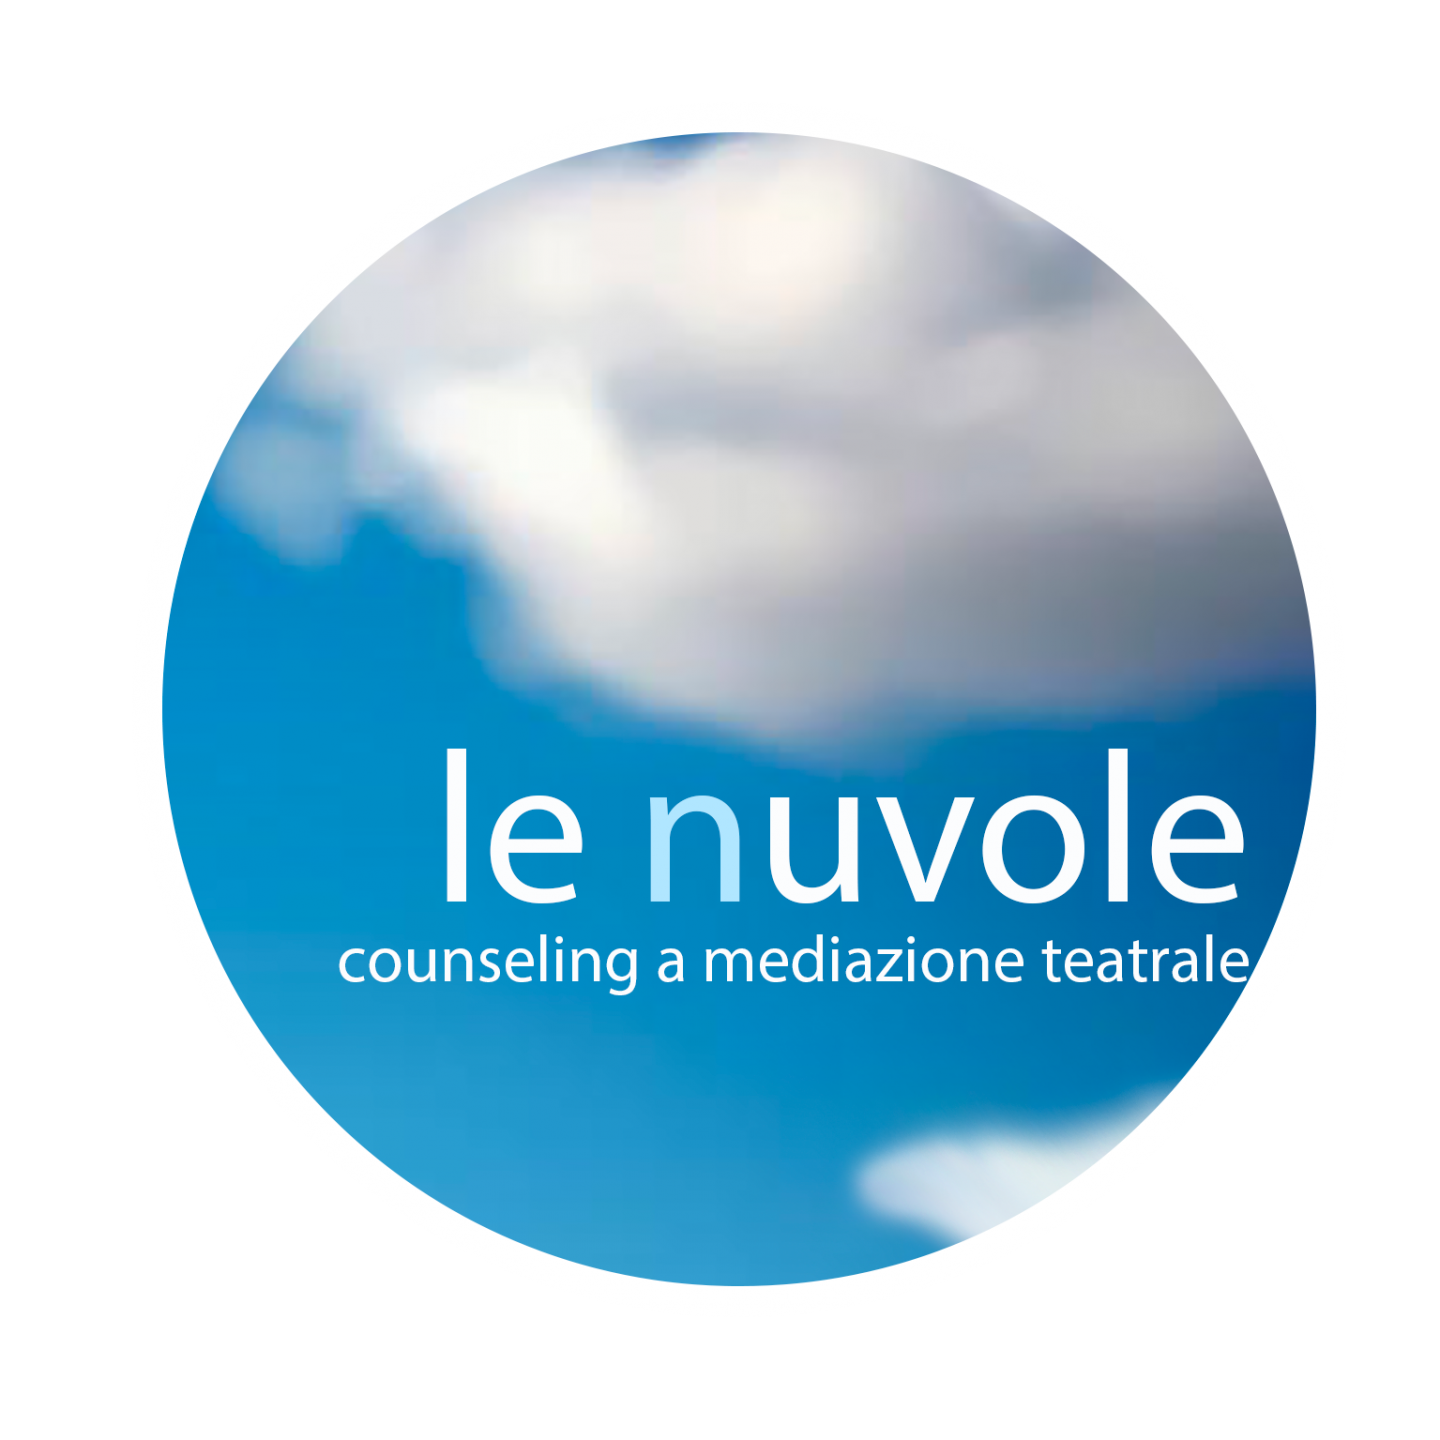 le nuvole – counseling a mediazione teatralele